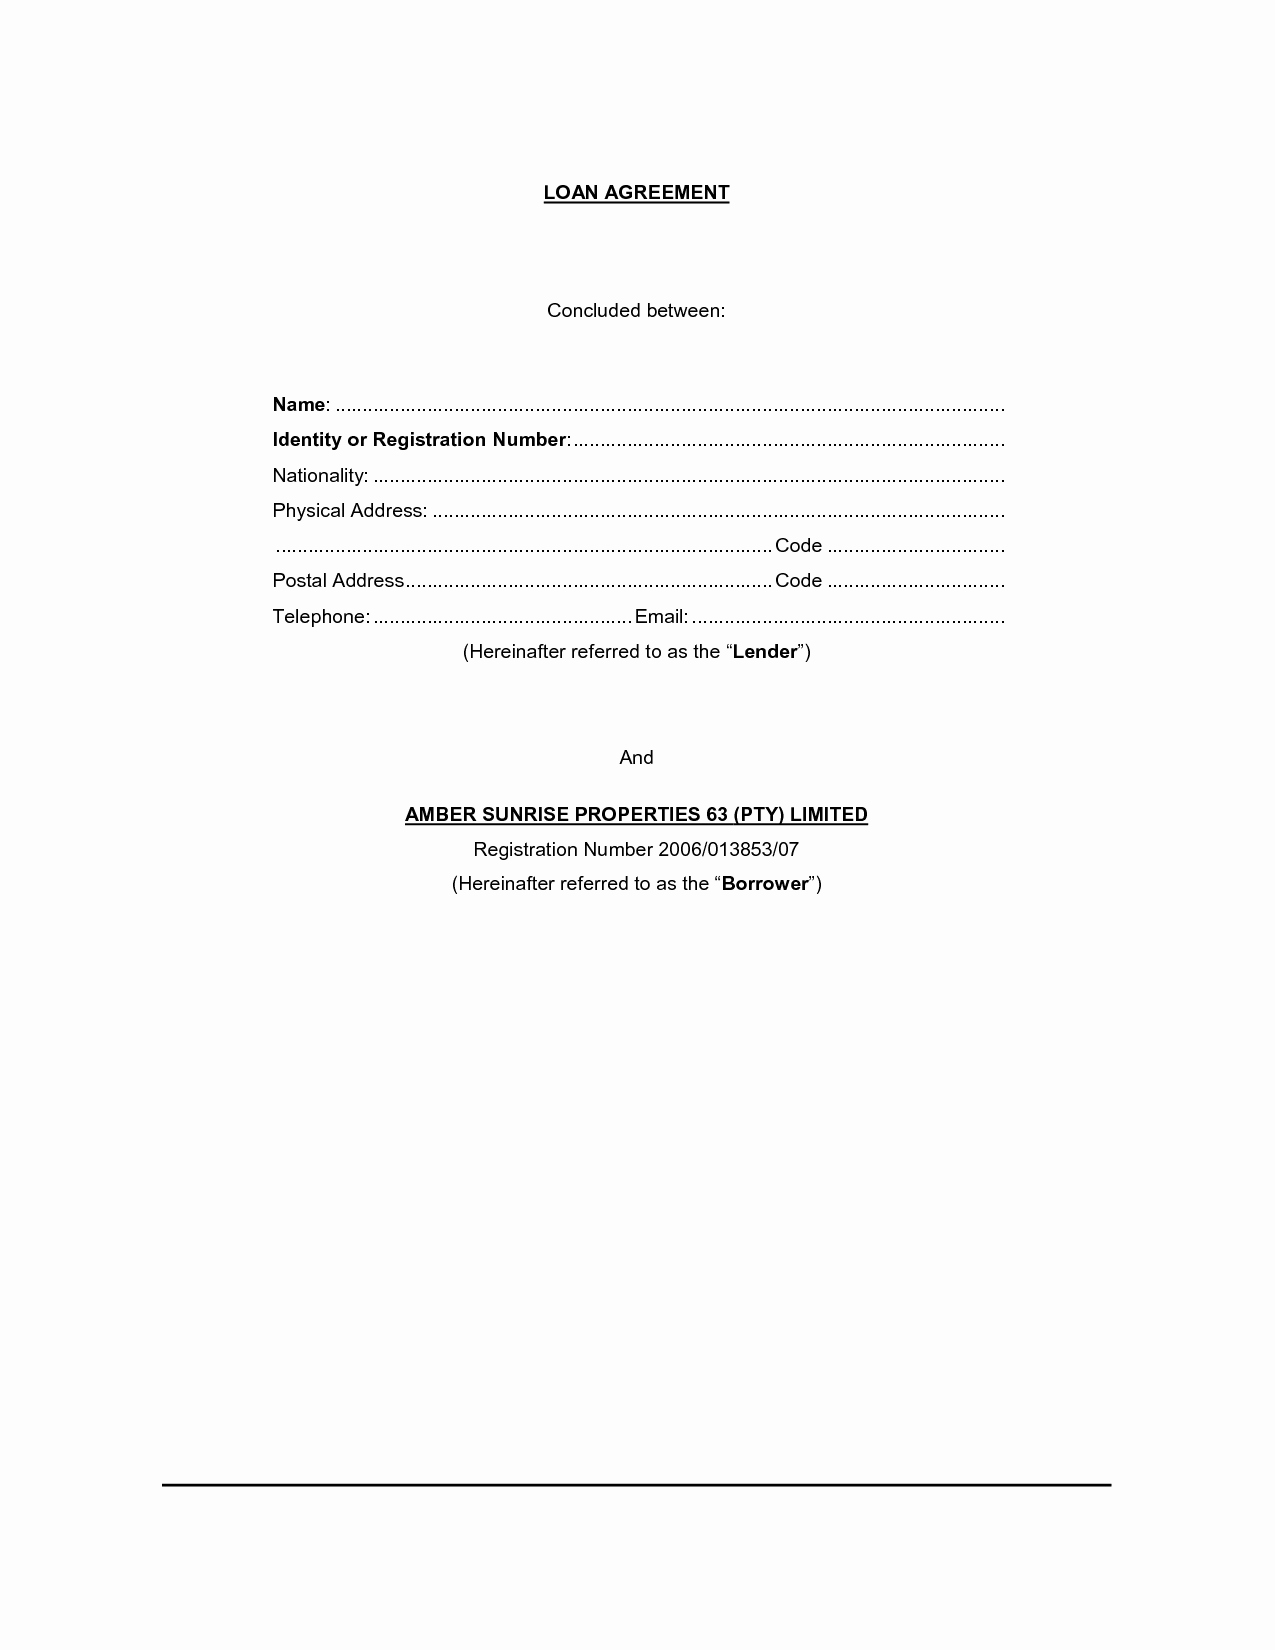 Money Loan Contract Template Free Best Of Money Loan Contract Template Free Free Printable Documents